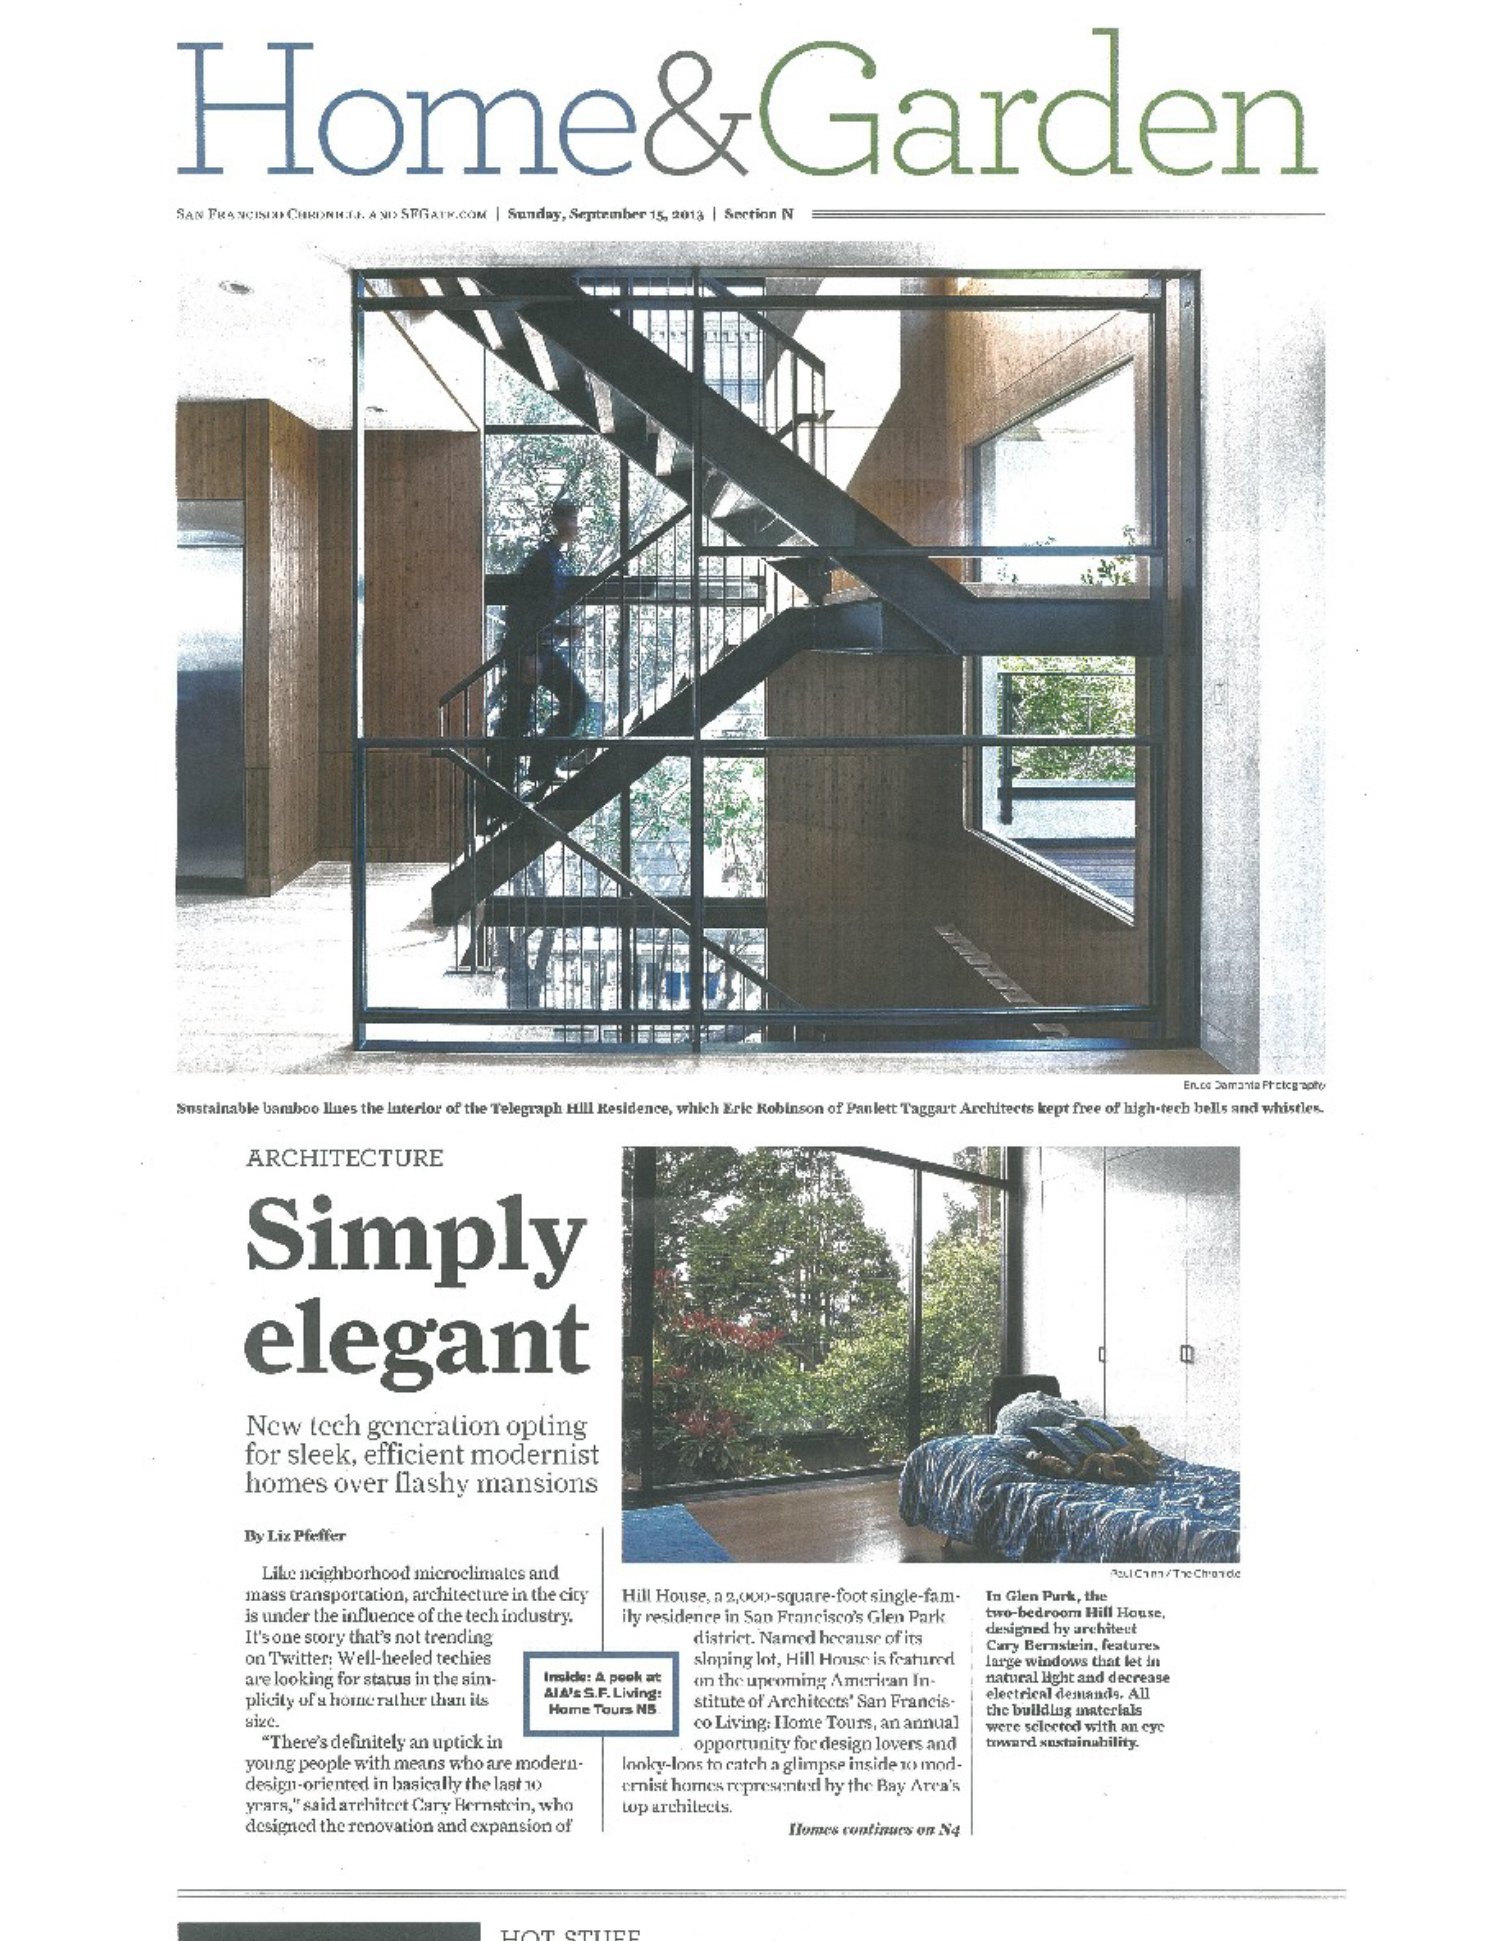 SF Chronicle Home & Garden section Sept 2013-1.jpg